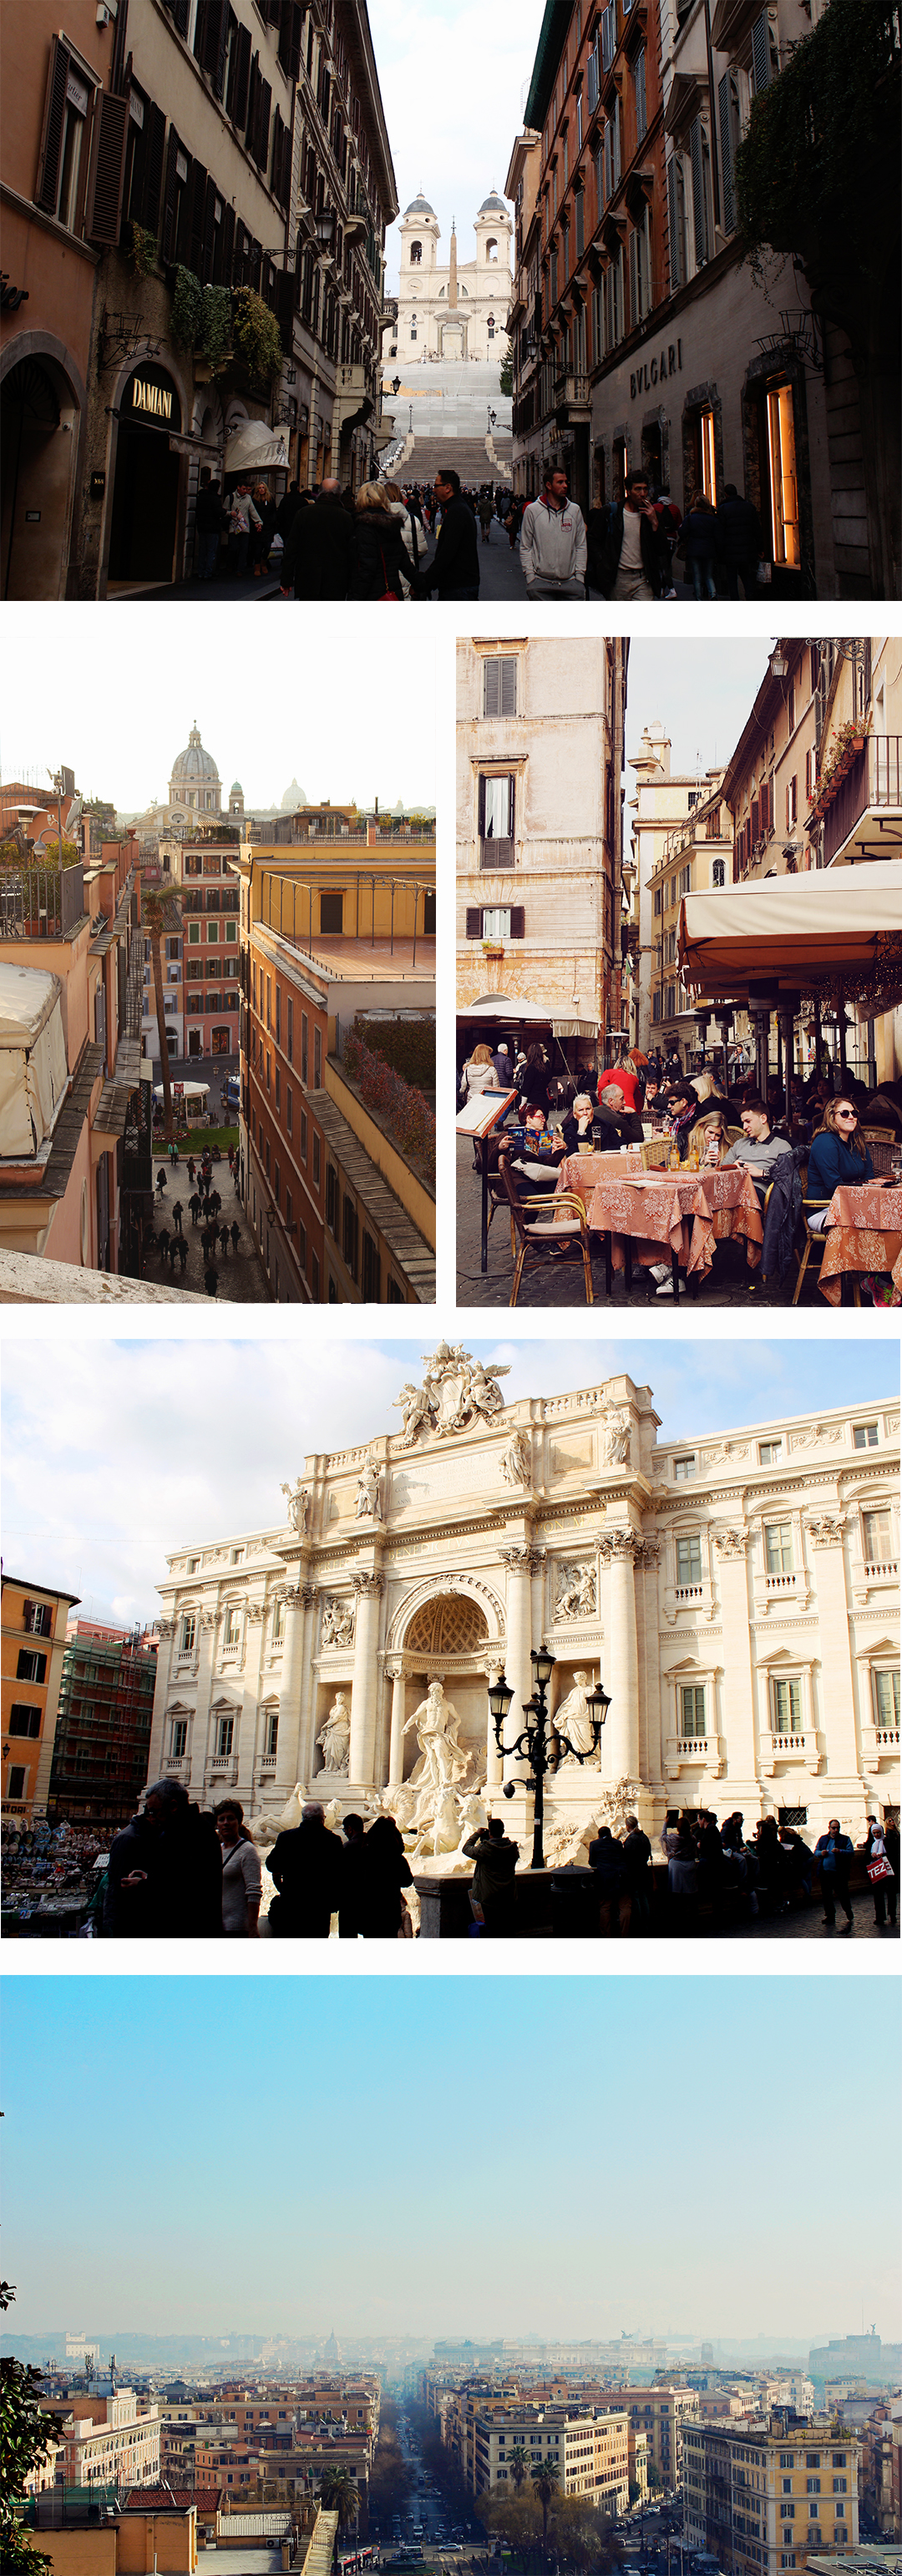 Views and Landmarks across Rome, Italy